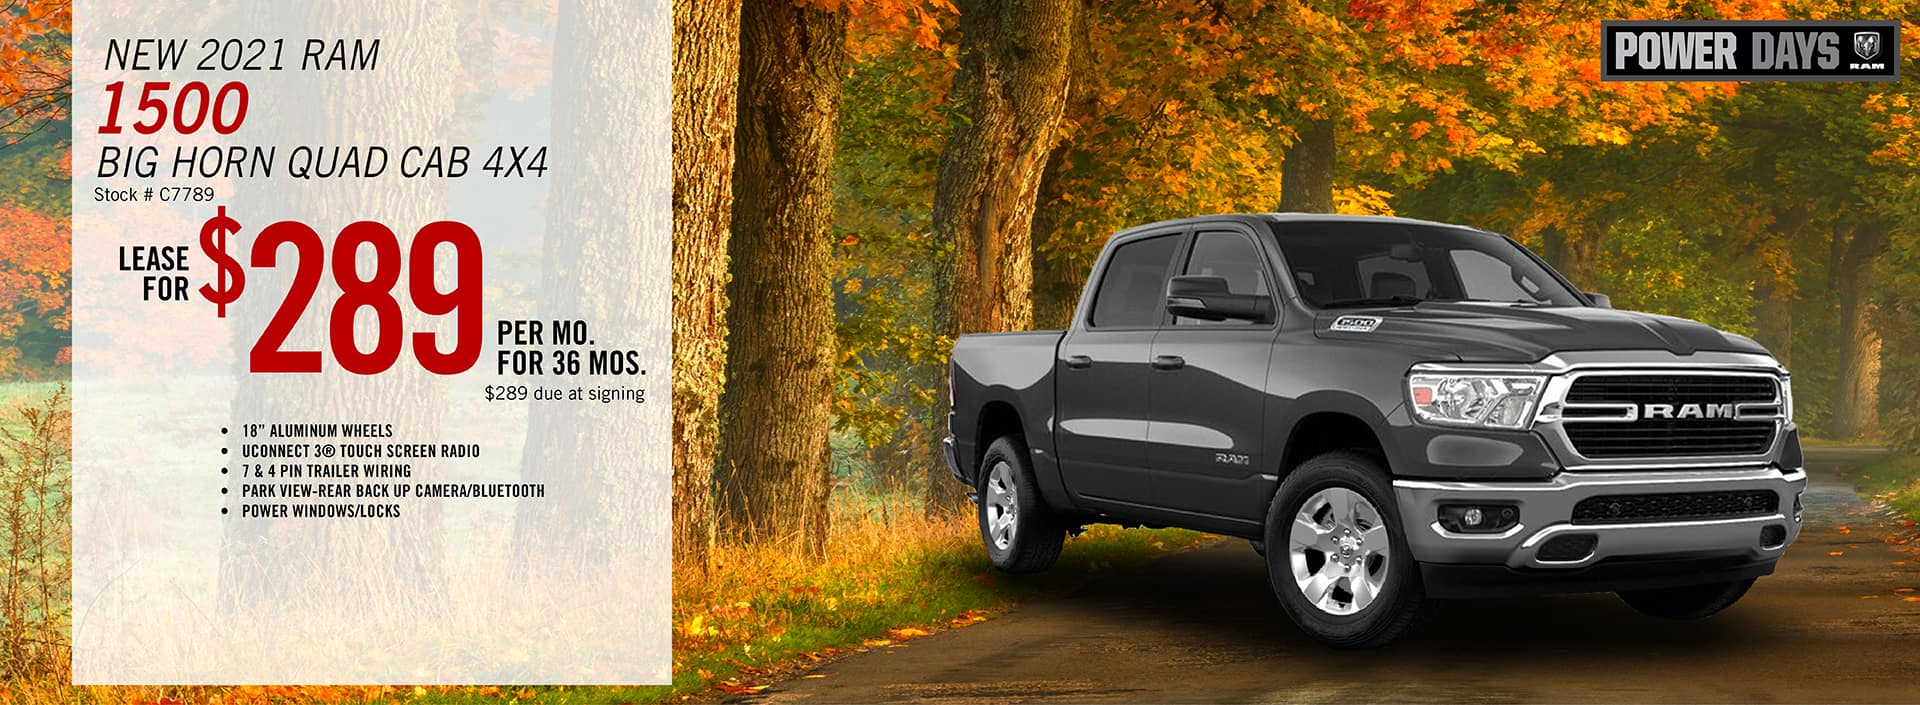 2021 RAM 1500 Big Horn Quad Cab Lease Offer | Barre, VT